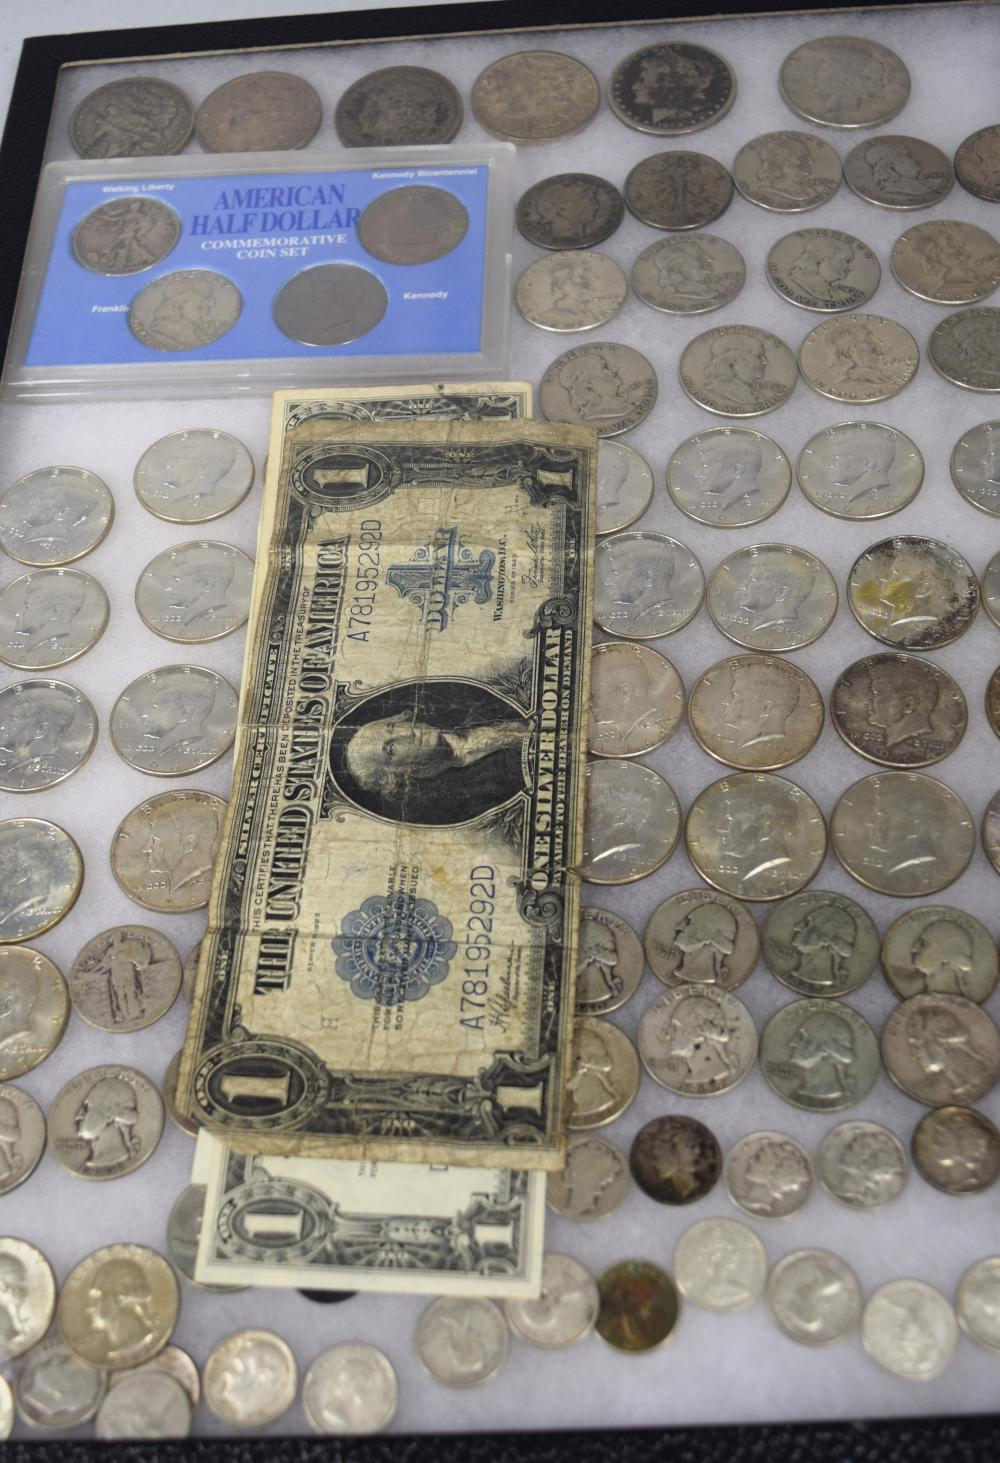 US SILVER, PAPER CURRENCY, & FOREIGN SILVER COINS & ONE TOKEN: